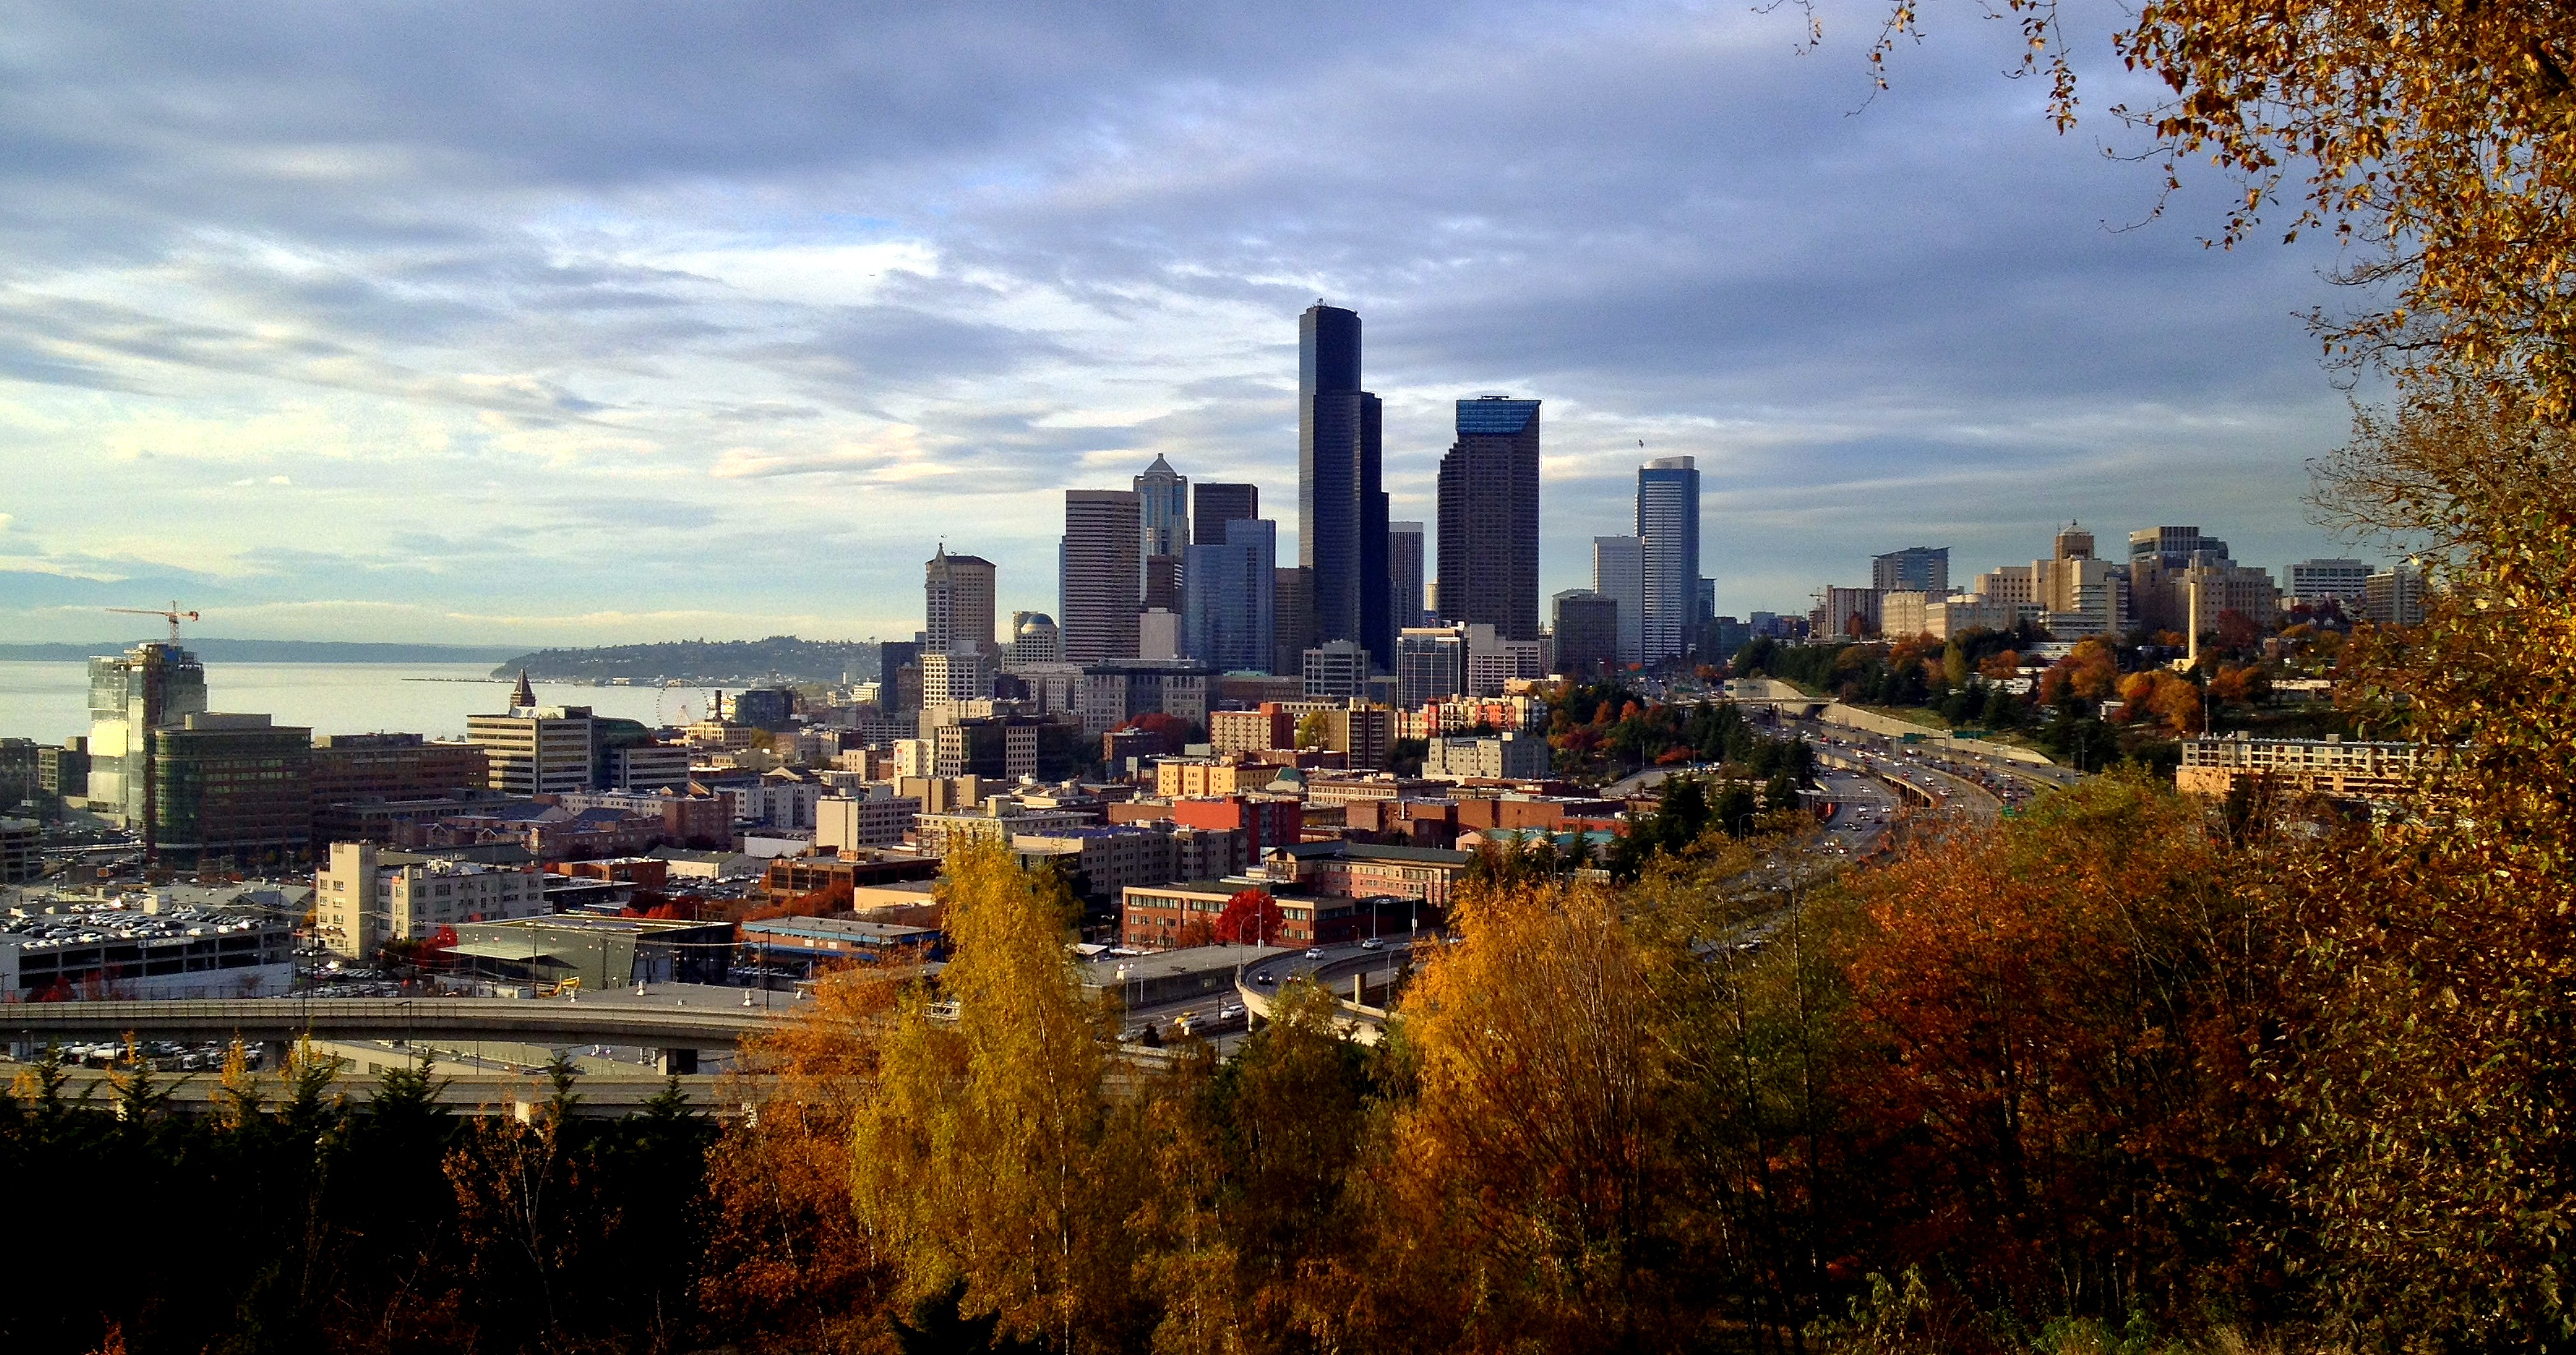 Welcoming the Holiday - Seattle in the Fall, view from the South.